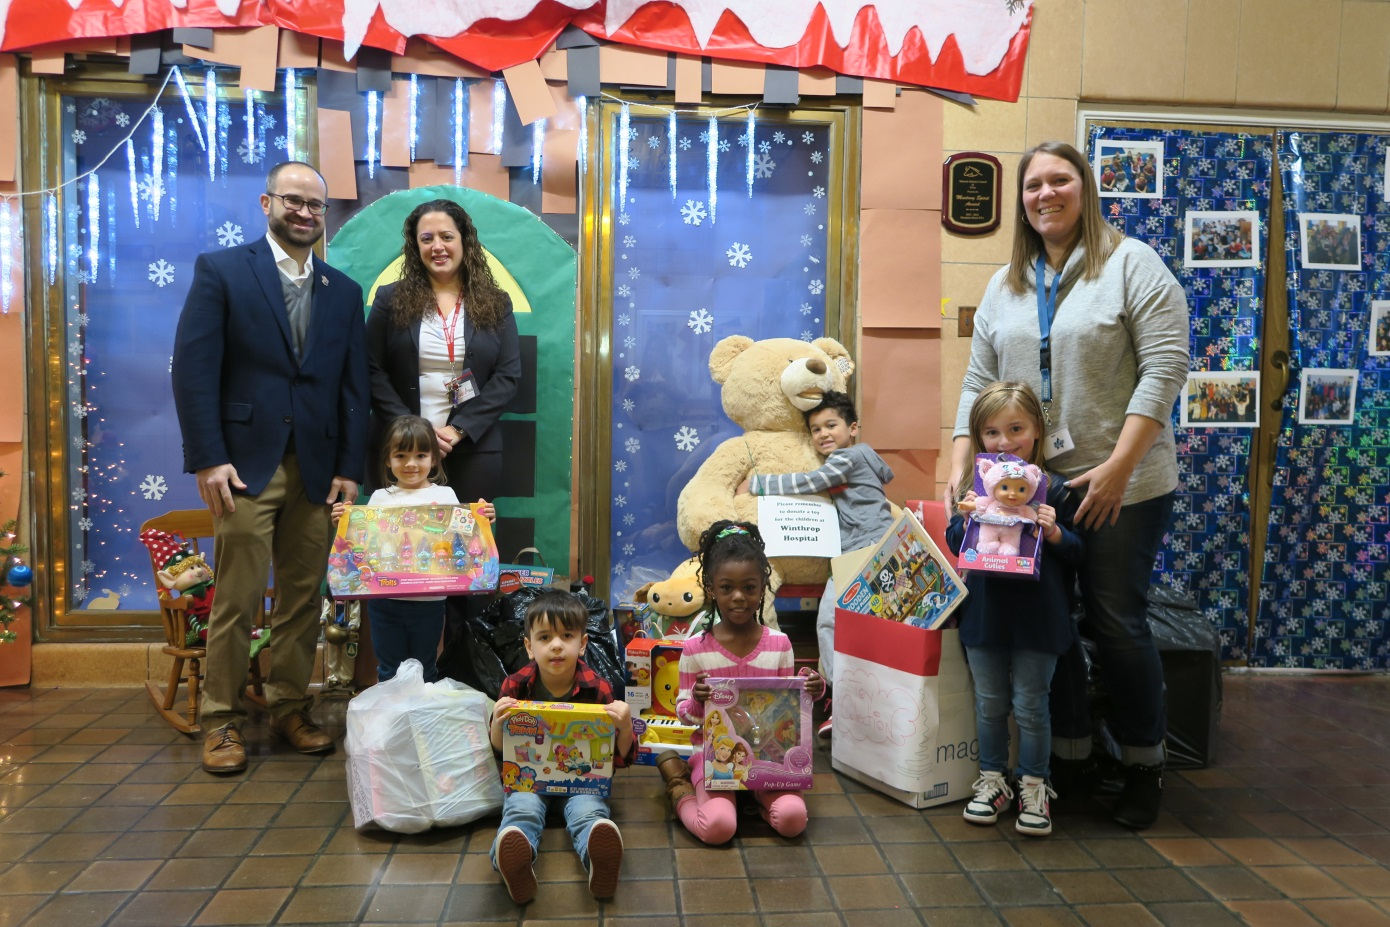 Assemblyman Ed Ra (R-Franklin Square), Margarita Maravel, principal of Hampton Street School, Christine O'Grady, Pre-K teacher at Hampton Street School and students of Hampton Street school with